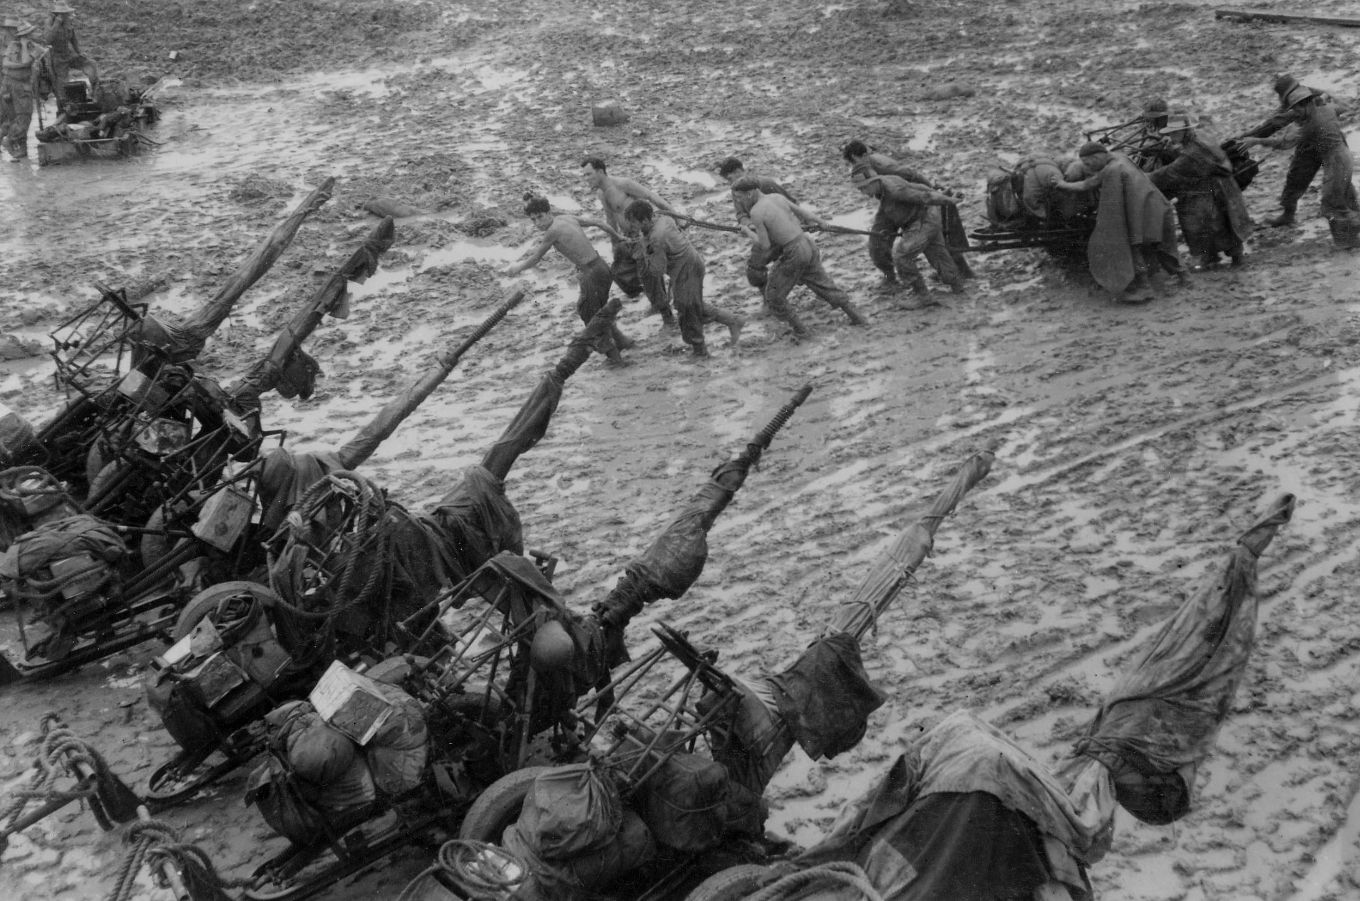 Operation Dracula. The Advance on Rangoon March - May 1945. Members of 2959 LAA Squadron, Royal Air Force Regiment, marshalling their 20mm Hispano anti-aircraft guns after coming ashore at Elephant Point on the mouth of the Rangoon River, in the monsoon rains